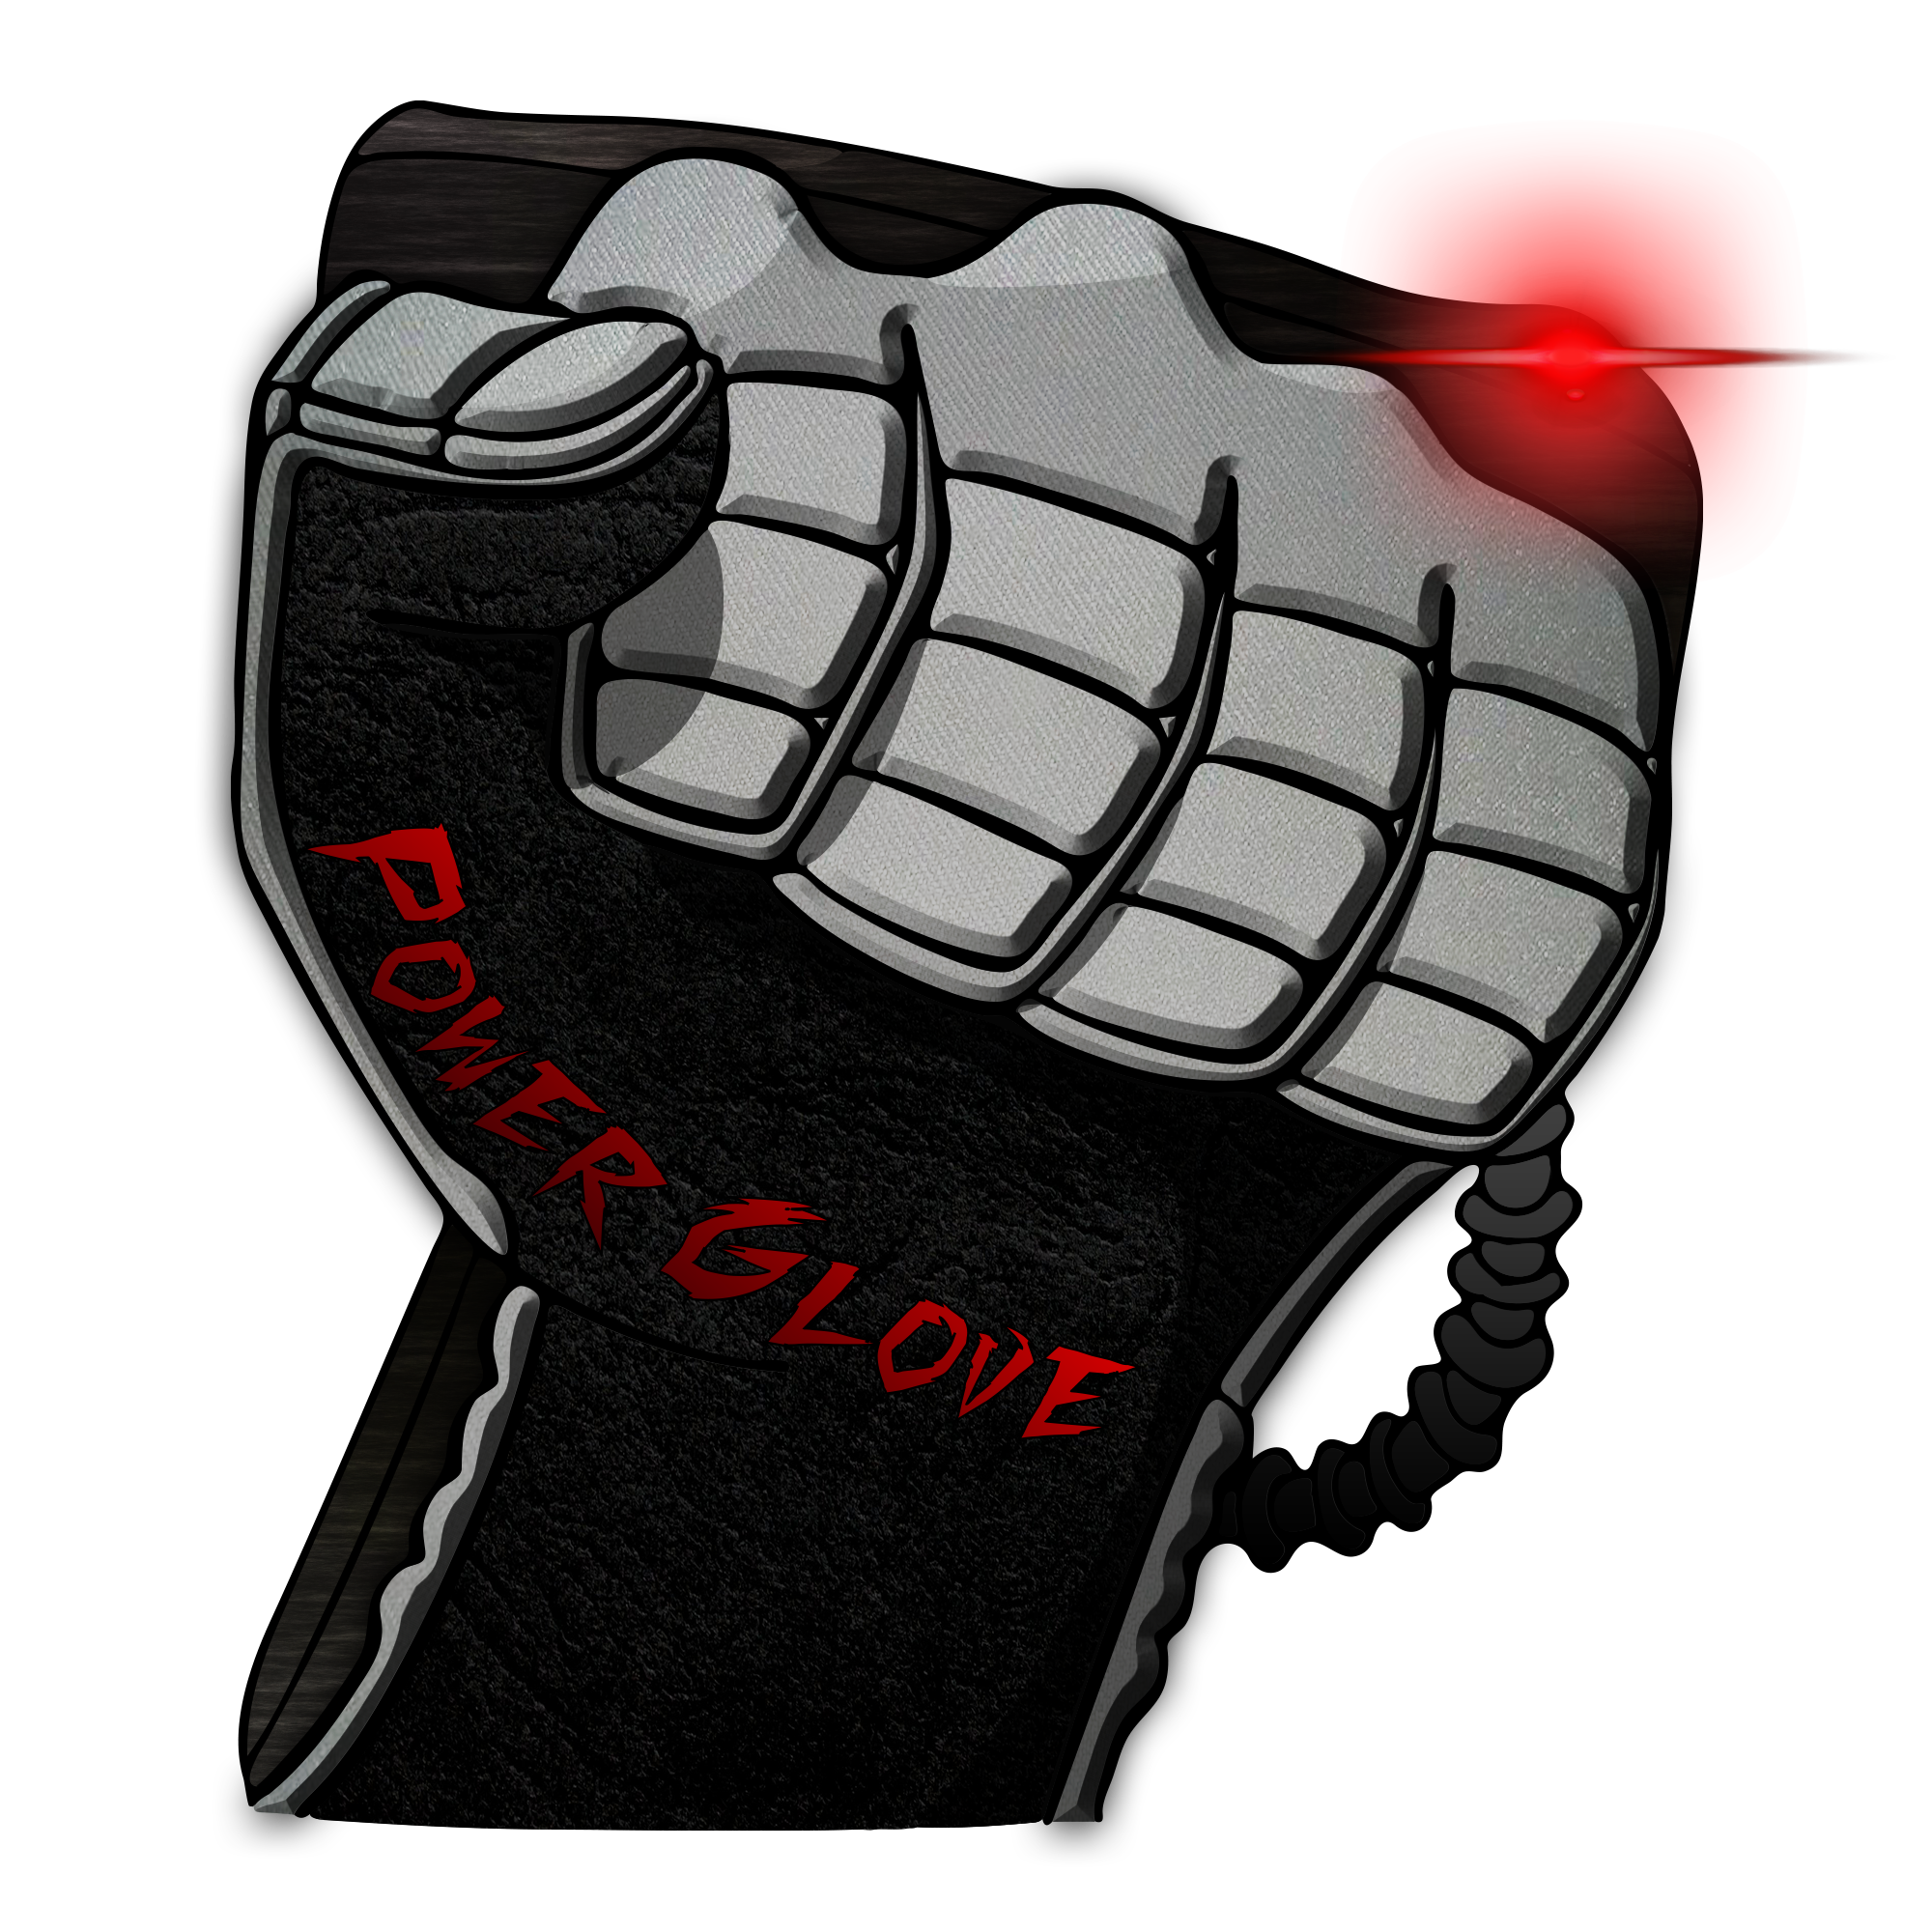 Glove working file